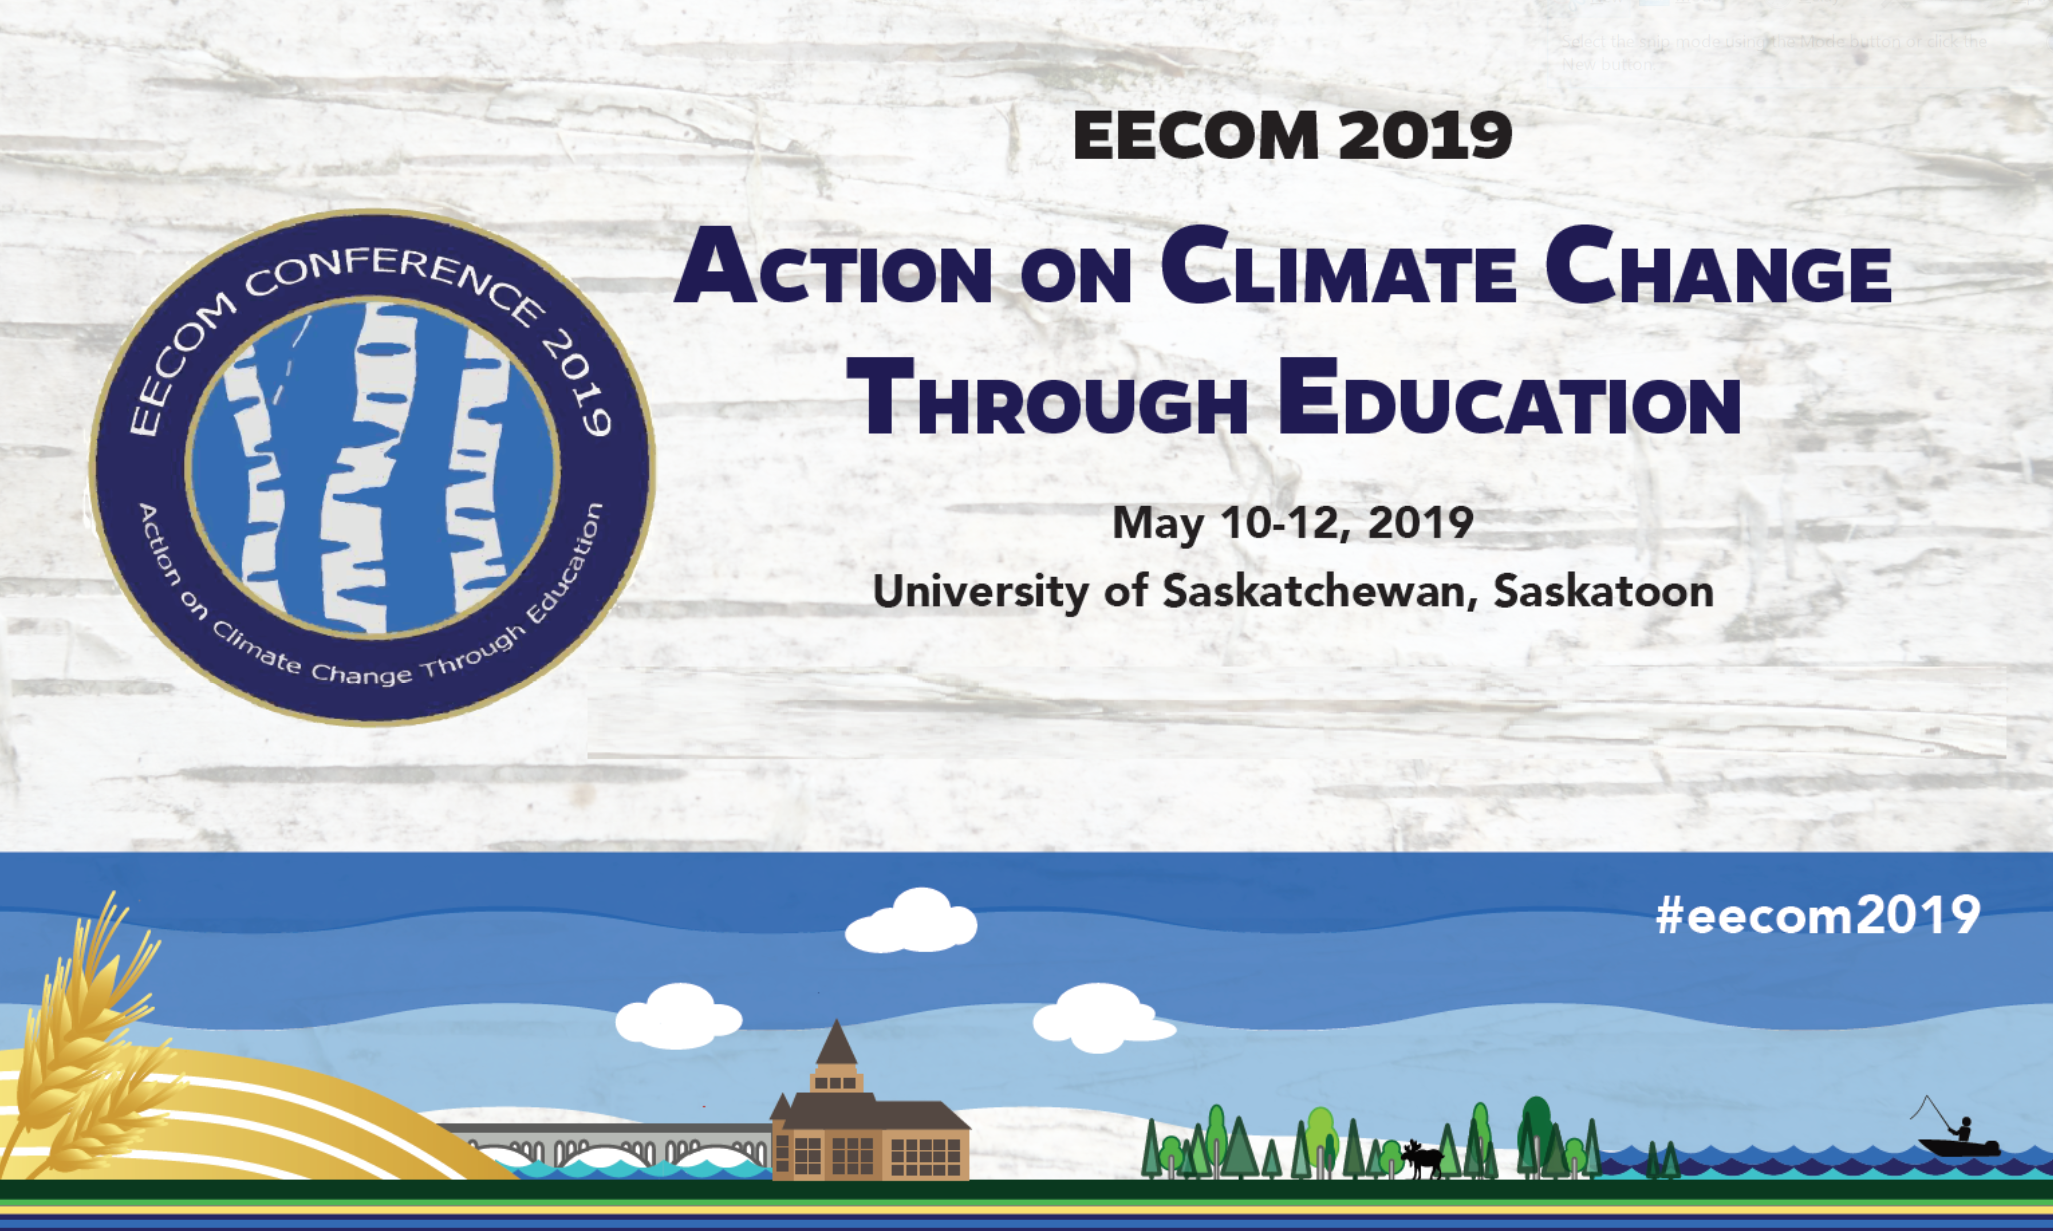 EECOM 2019 Conference